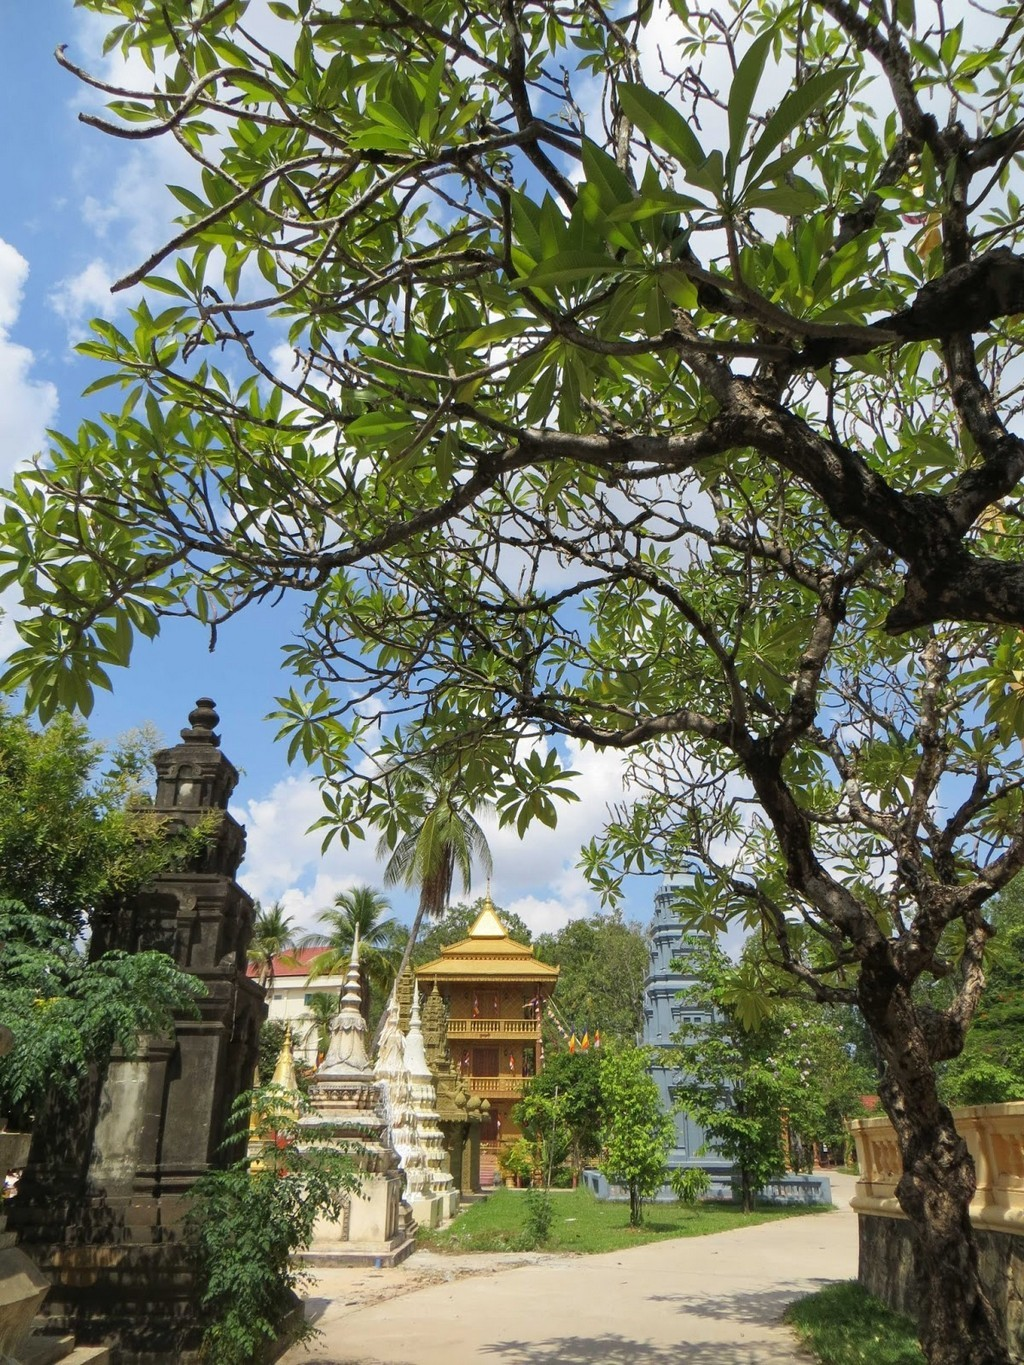 Wat Damnak Pagoda siem reap Image by: best places to visit in siem reap blog.